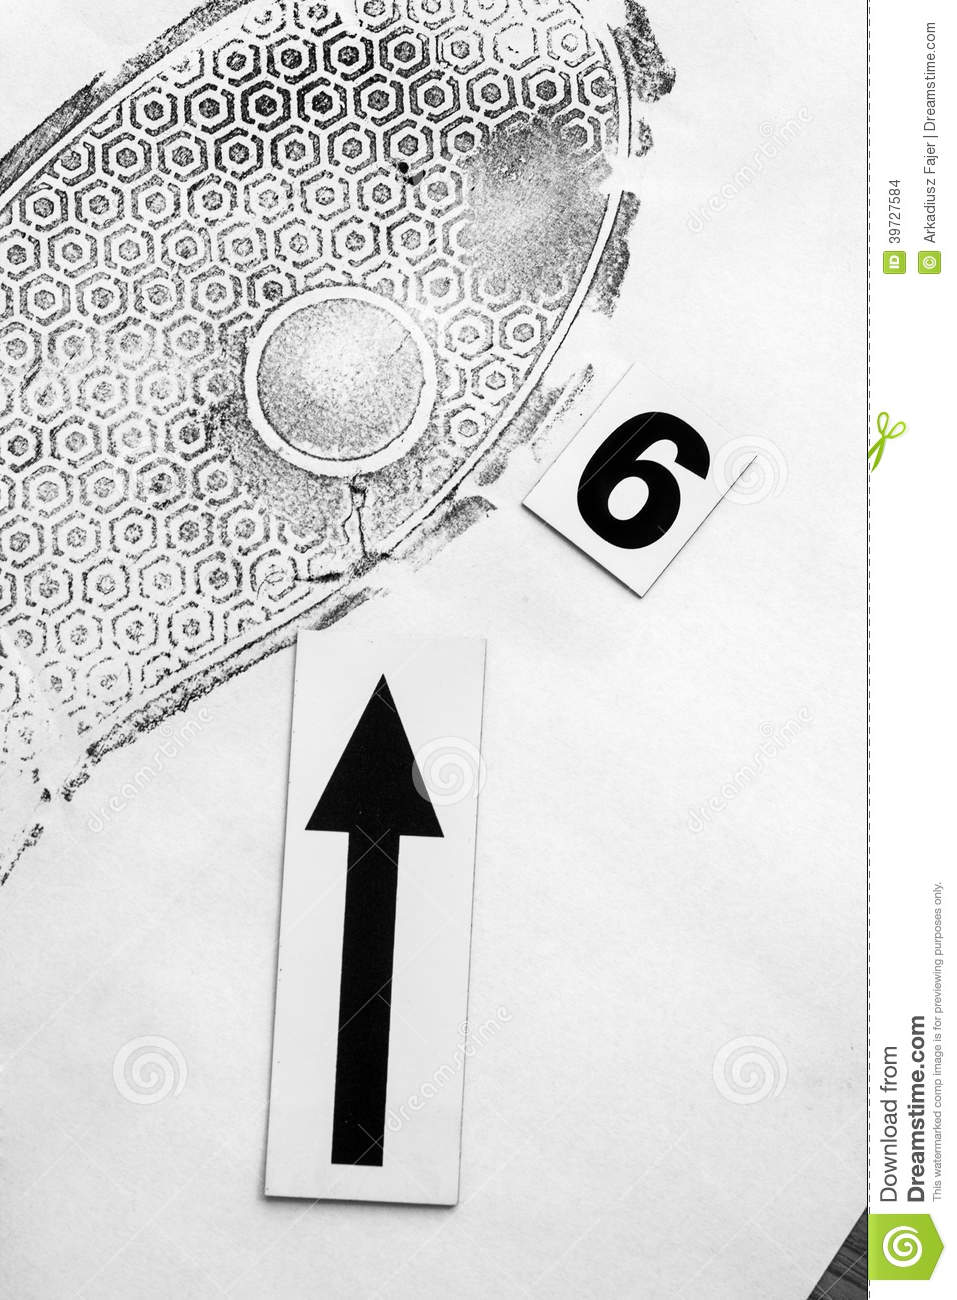 Footprint Stock Photo Image Of Hint Legal Clue Examination